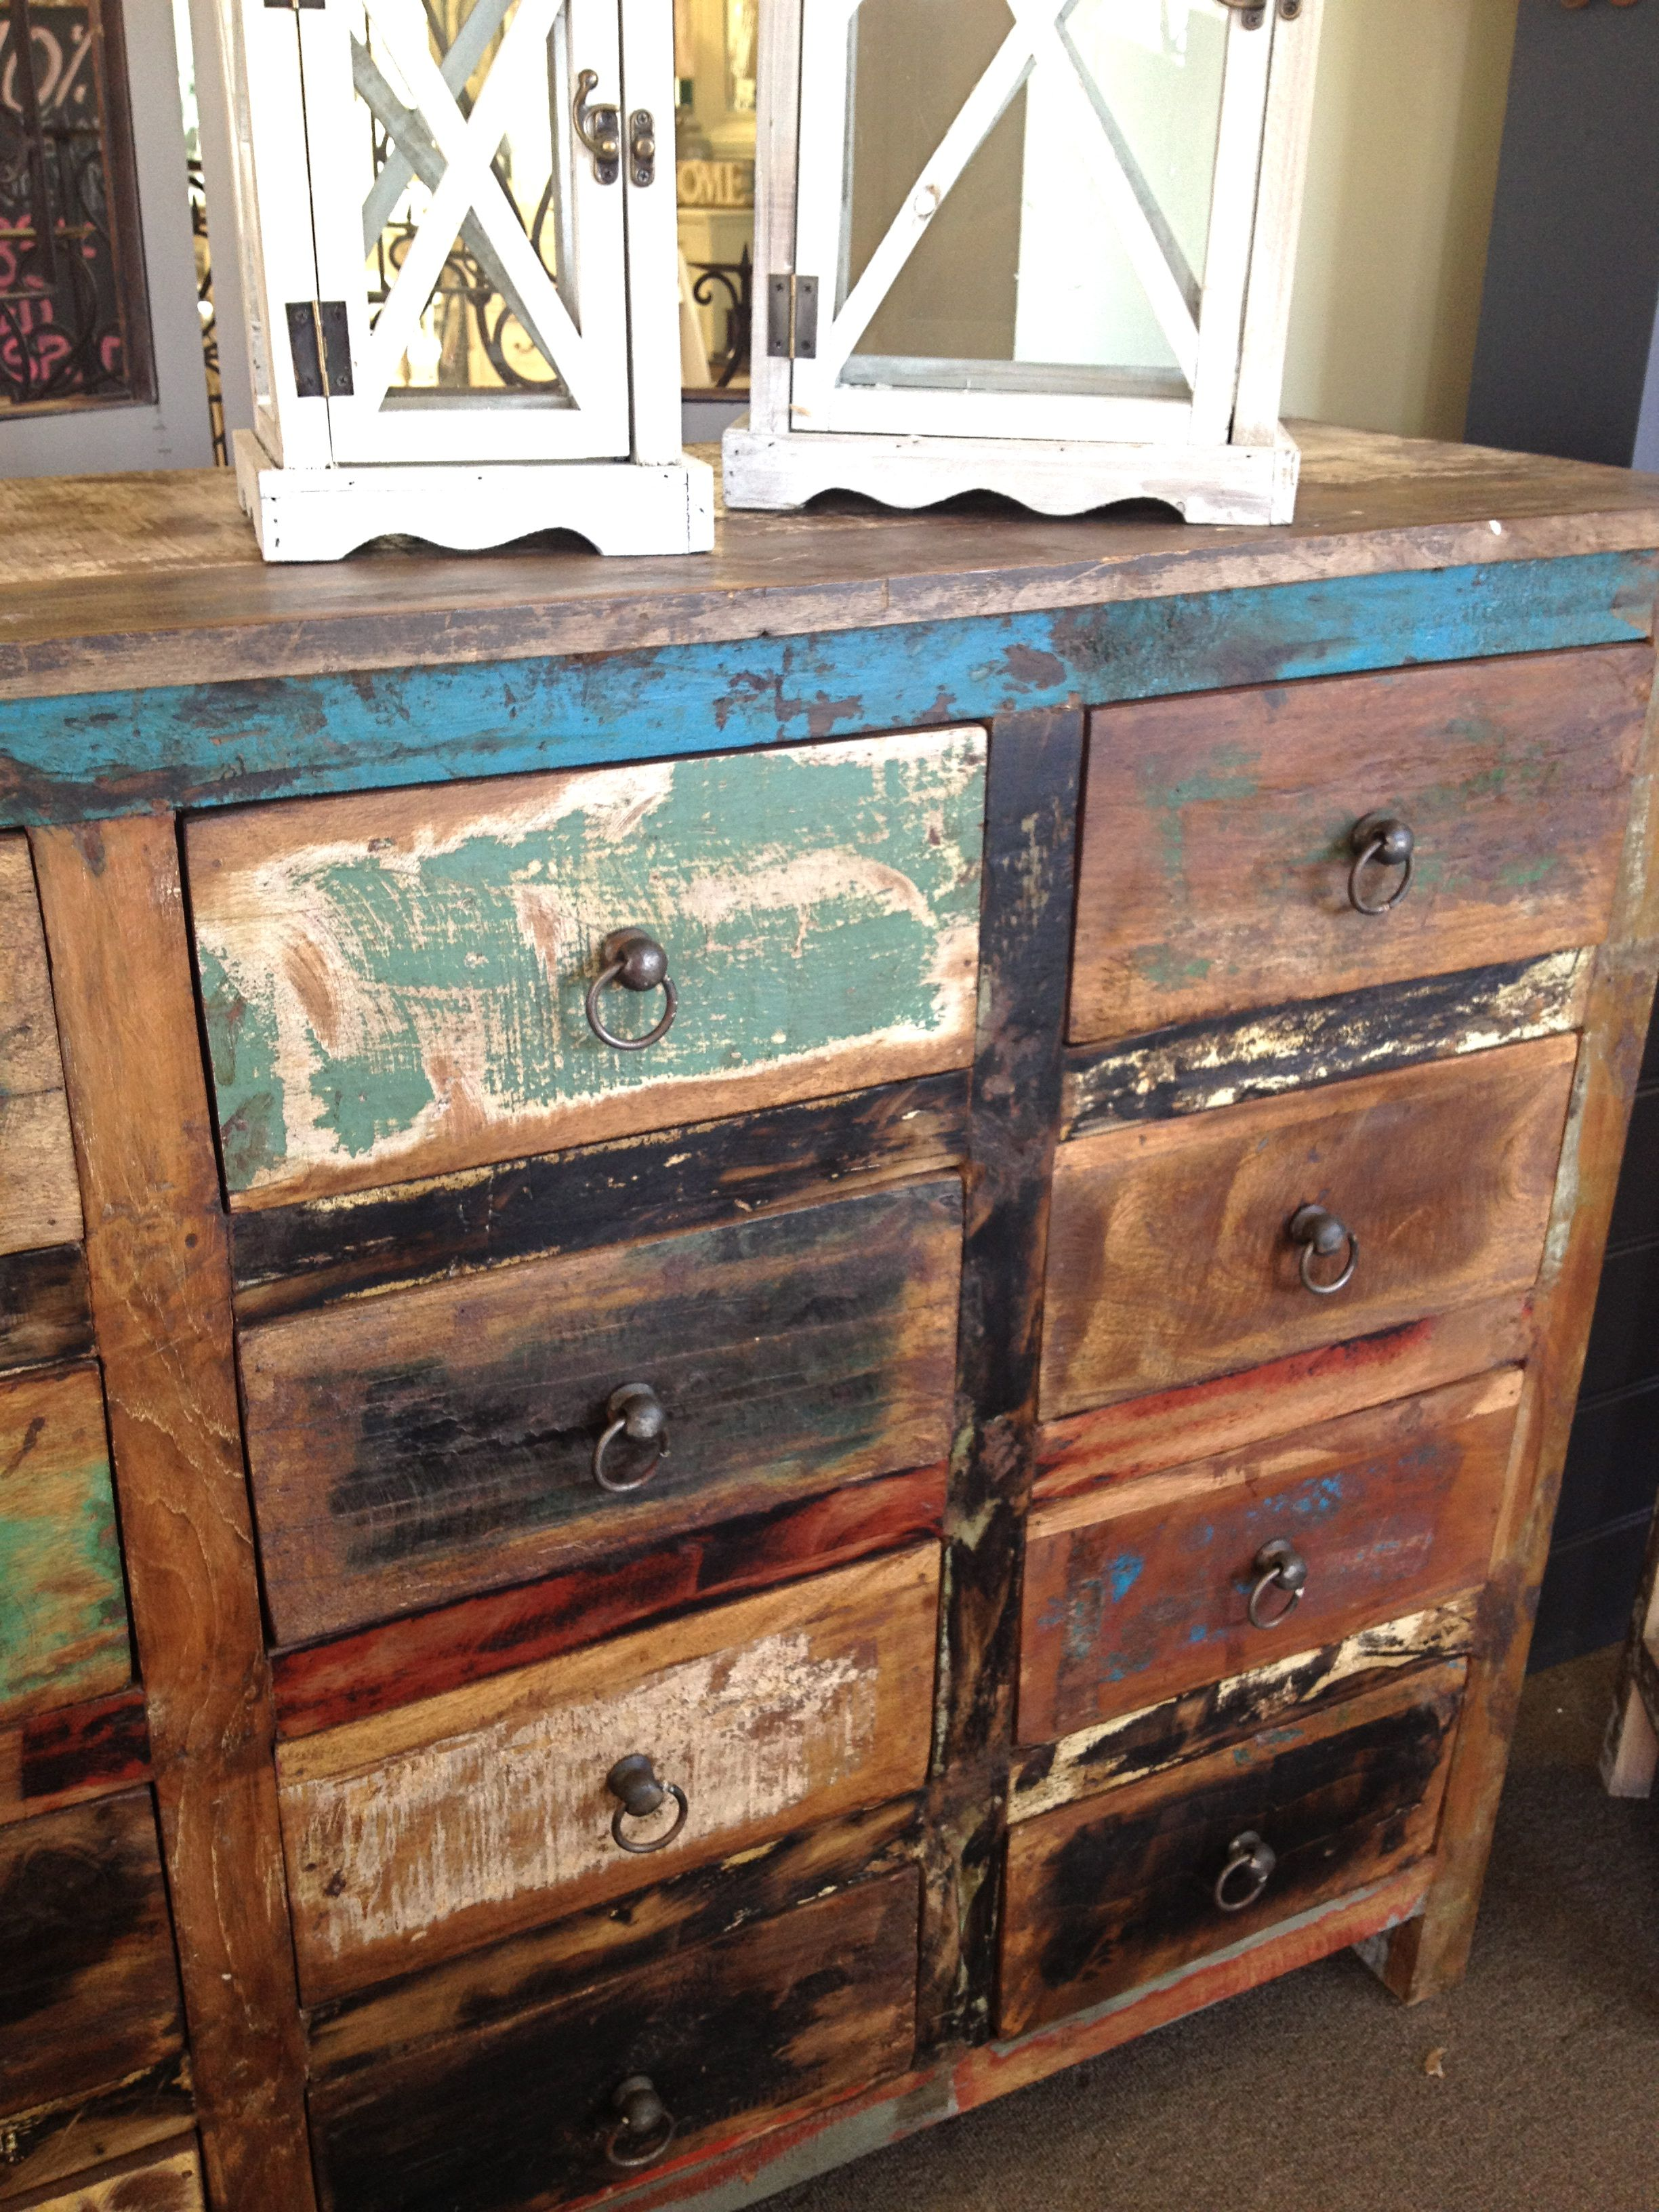 Distressed Wood Furniture Creating Lovely Rustic Charm